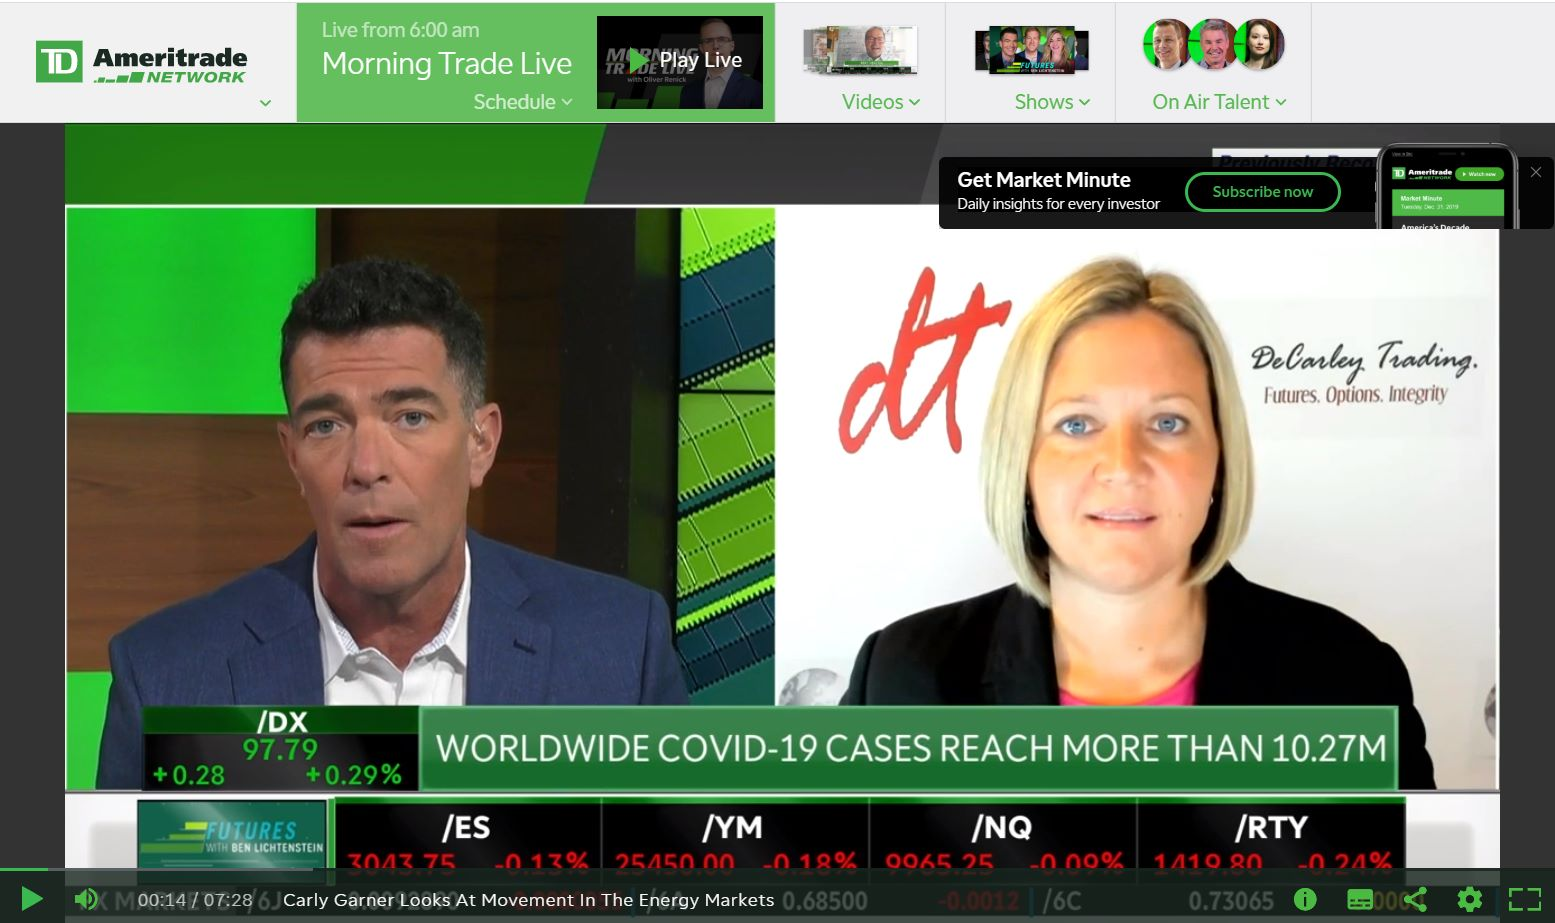 Options Broker, Carley Garner, on TD Ameritrade Network with Ben Lichtenstein